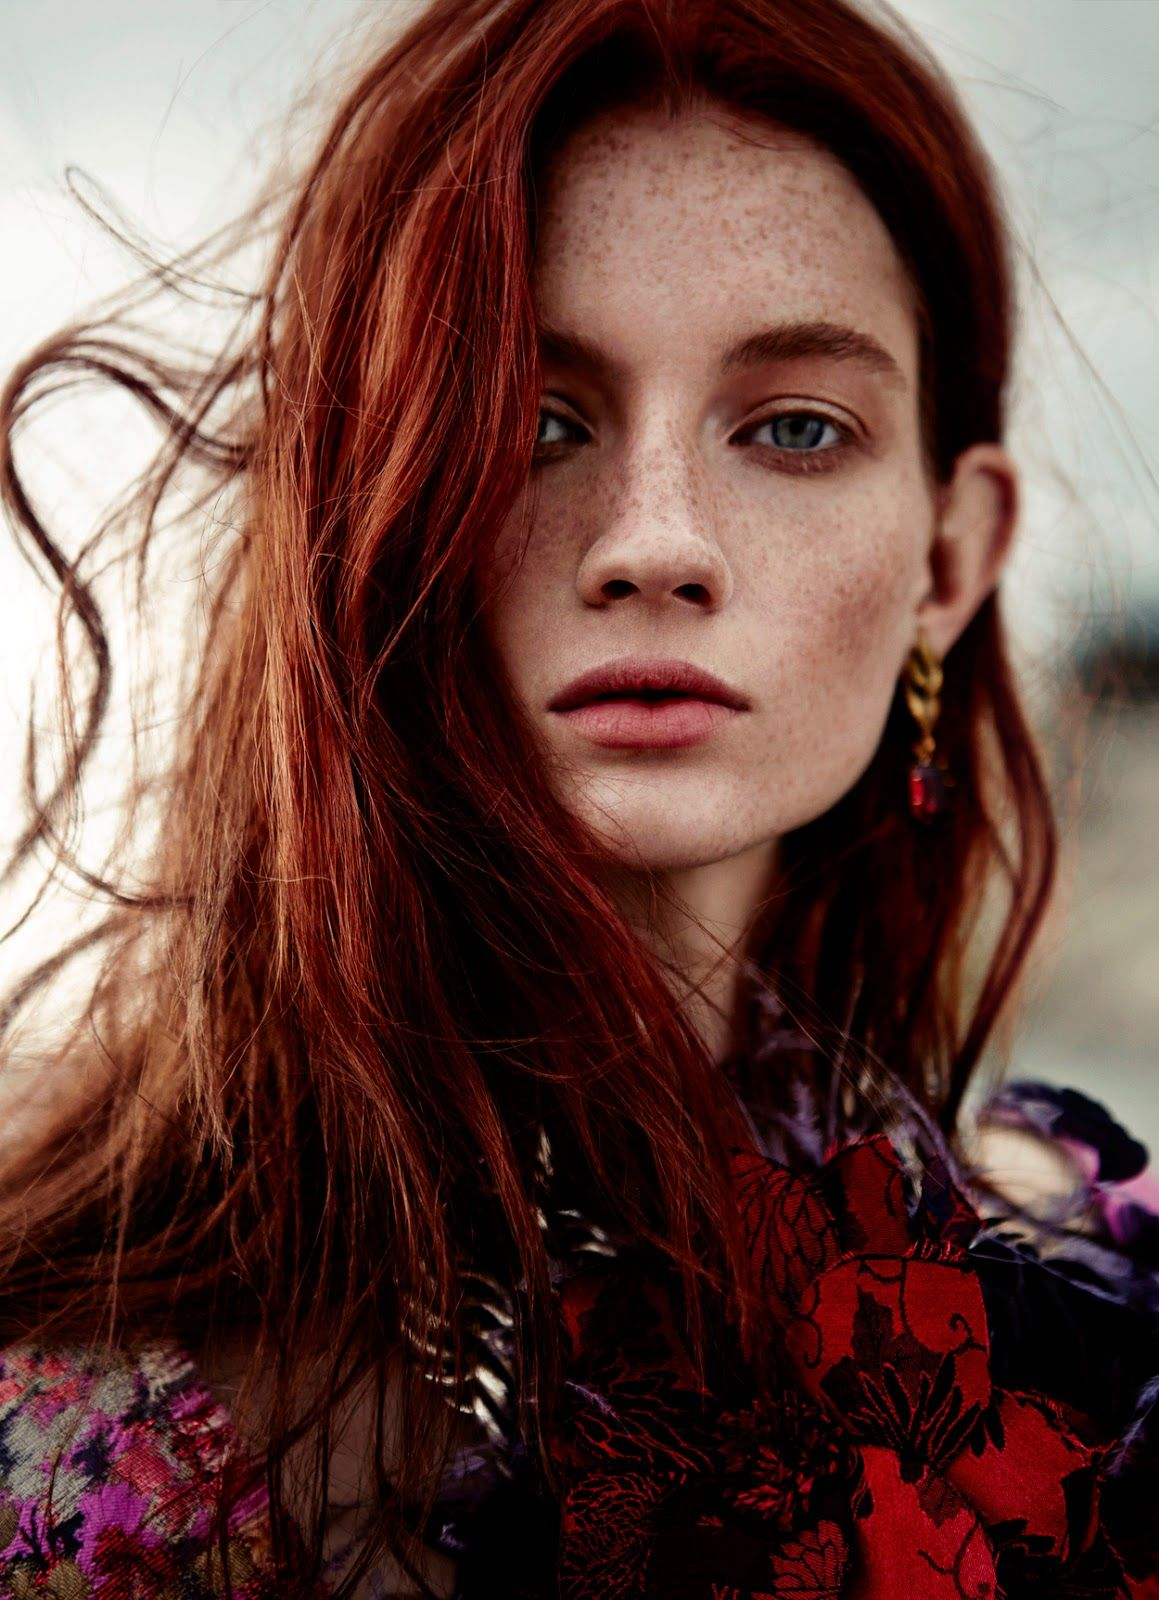 Best 25+ Red hair model ideas on Pinterest | Red heads ...